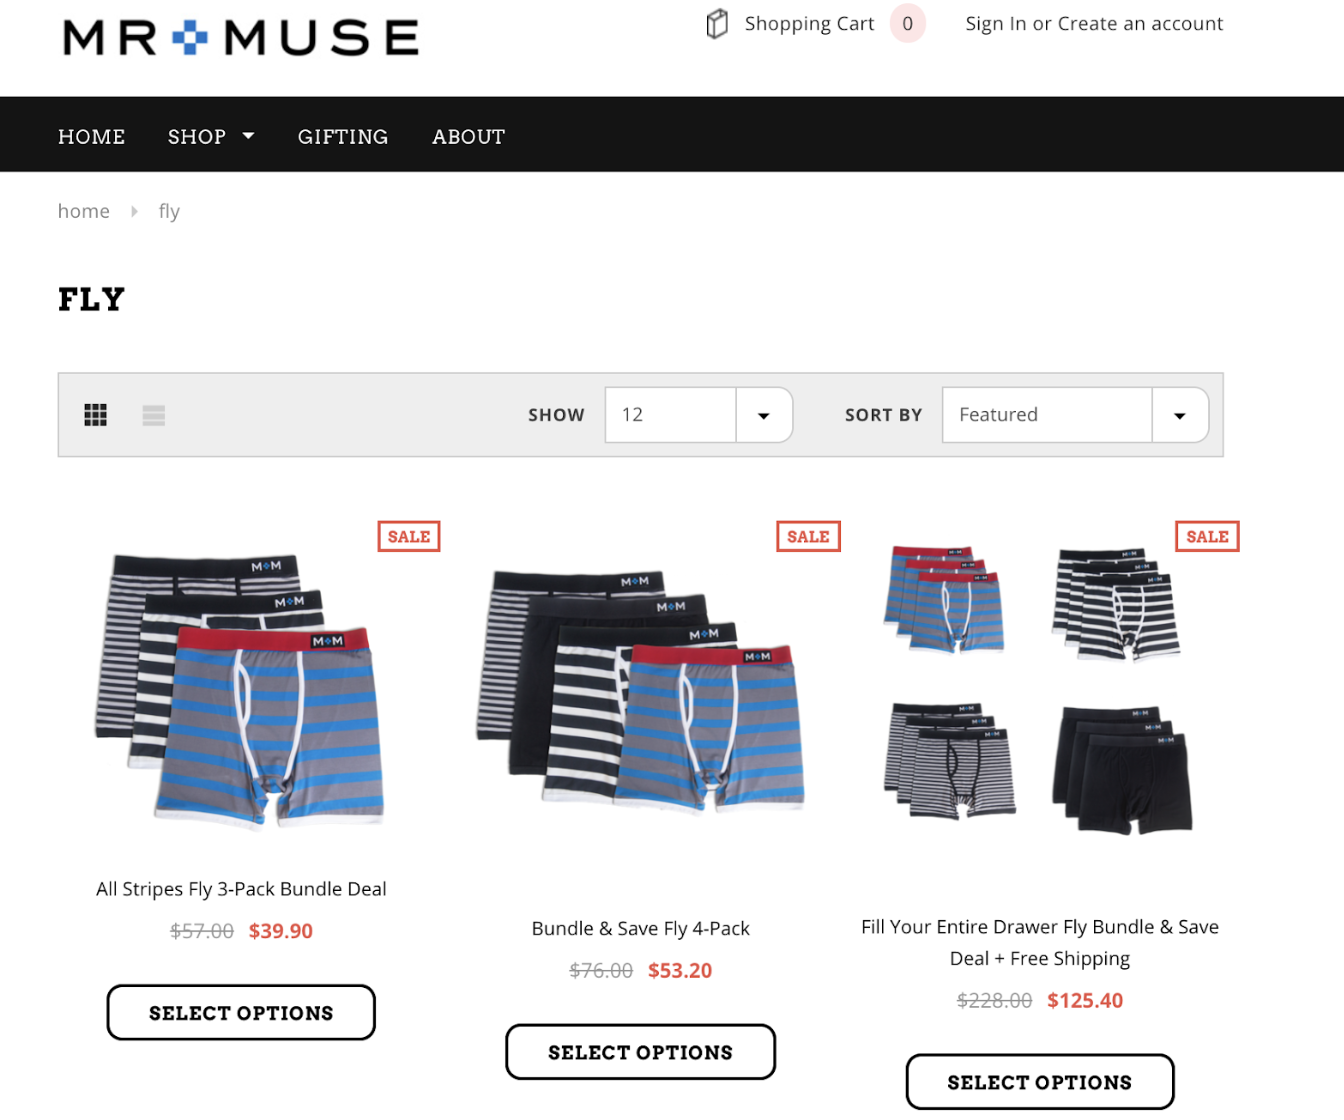 Mr and Muse ecommerce website